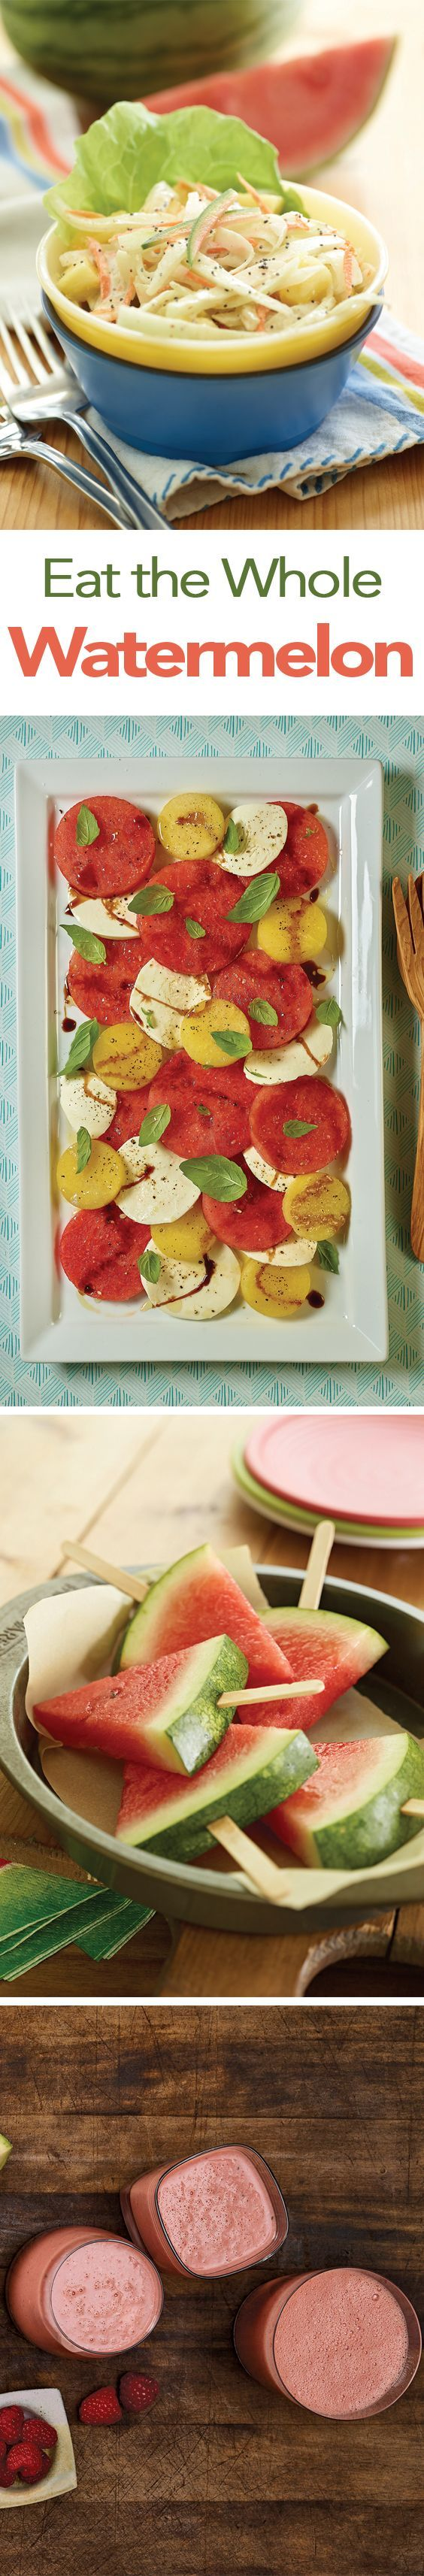 Watermelon is more than a sweet, juicy snack. Use it in recipes like Watermelon Rind Slaw, Watermelon Caprese Salad with Balsamic Vinegar Reduction, Watermelon Slice Ice Pops and Superfood Smoothie.